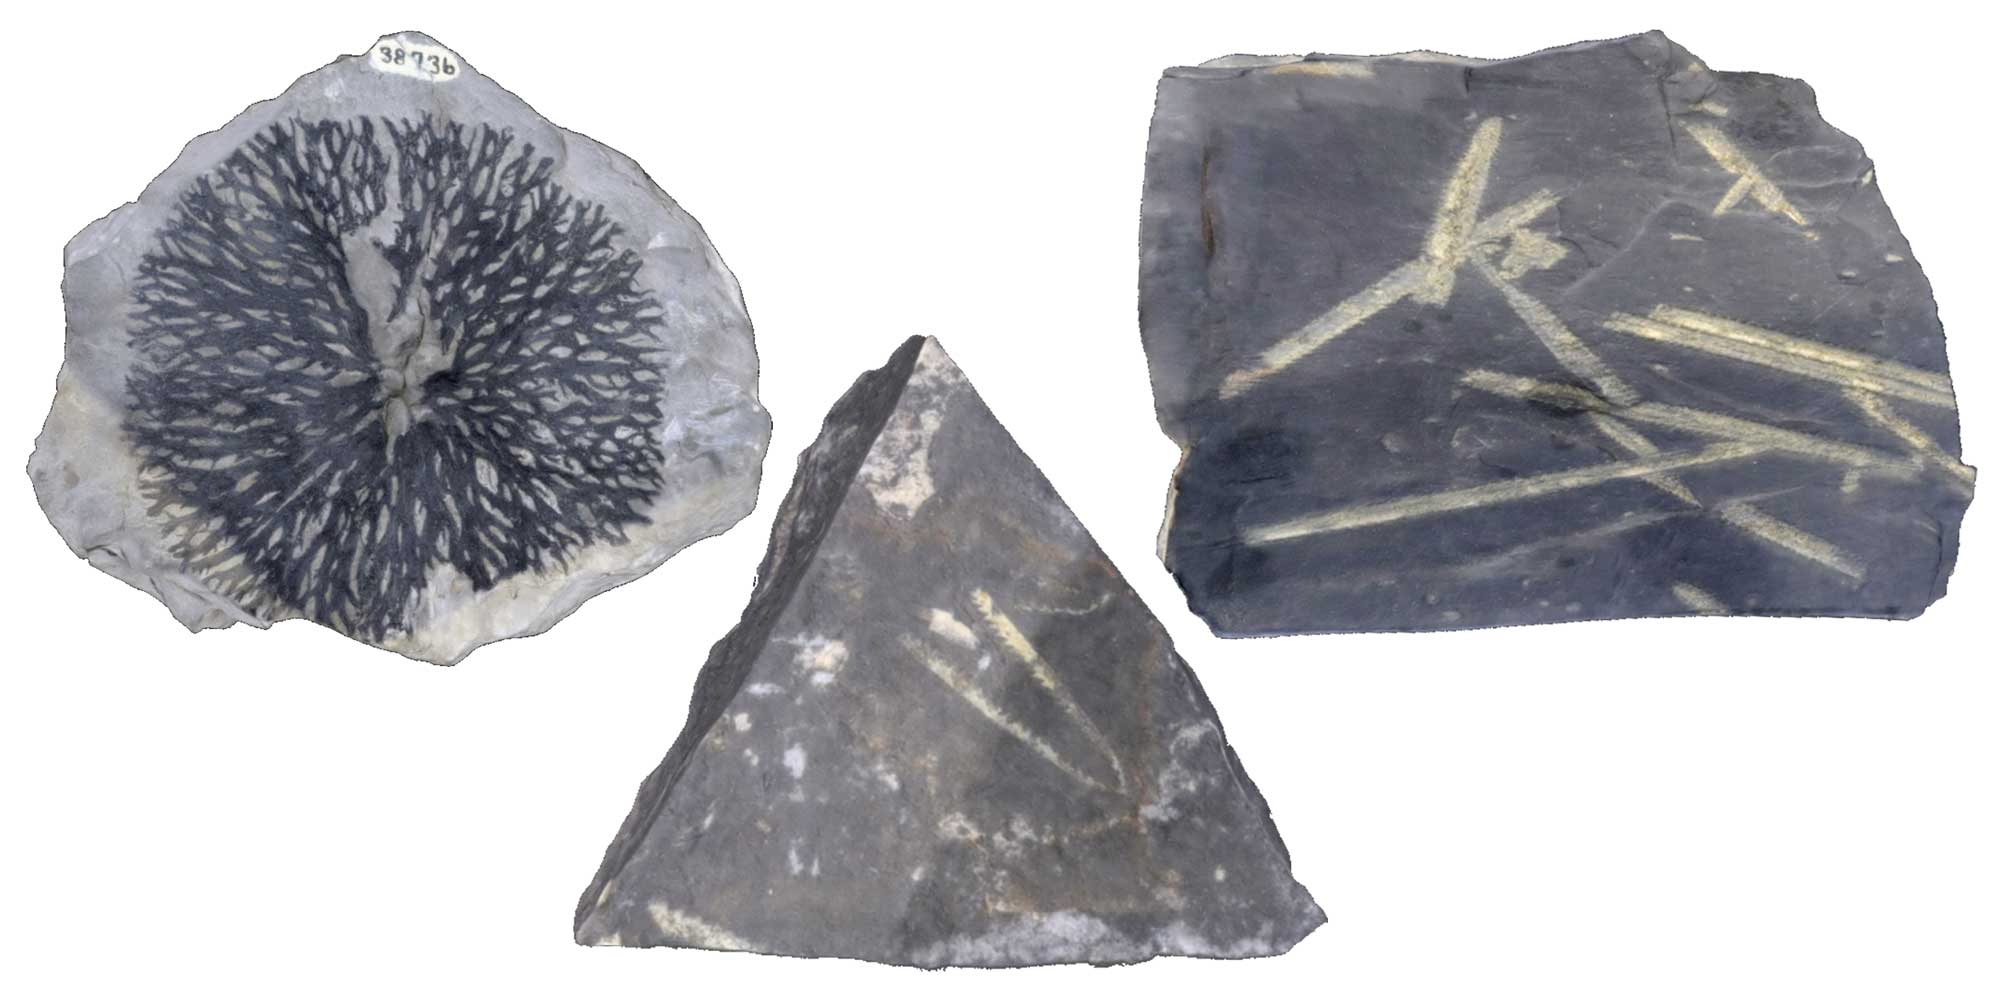 Images of three different graptolite fossils.